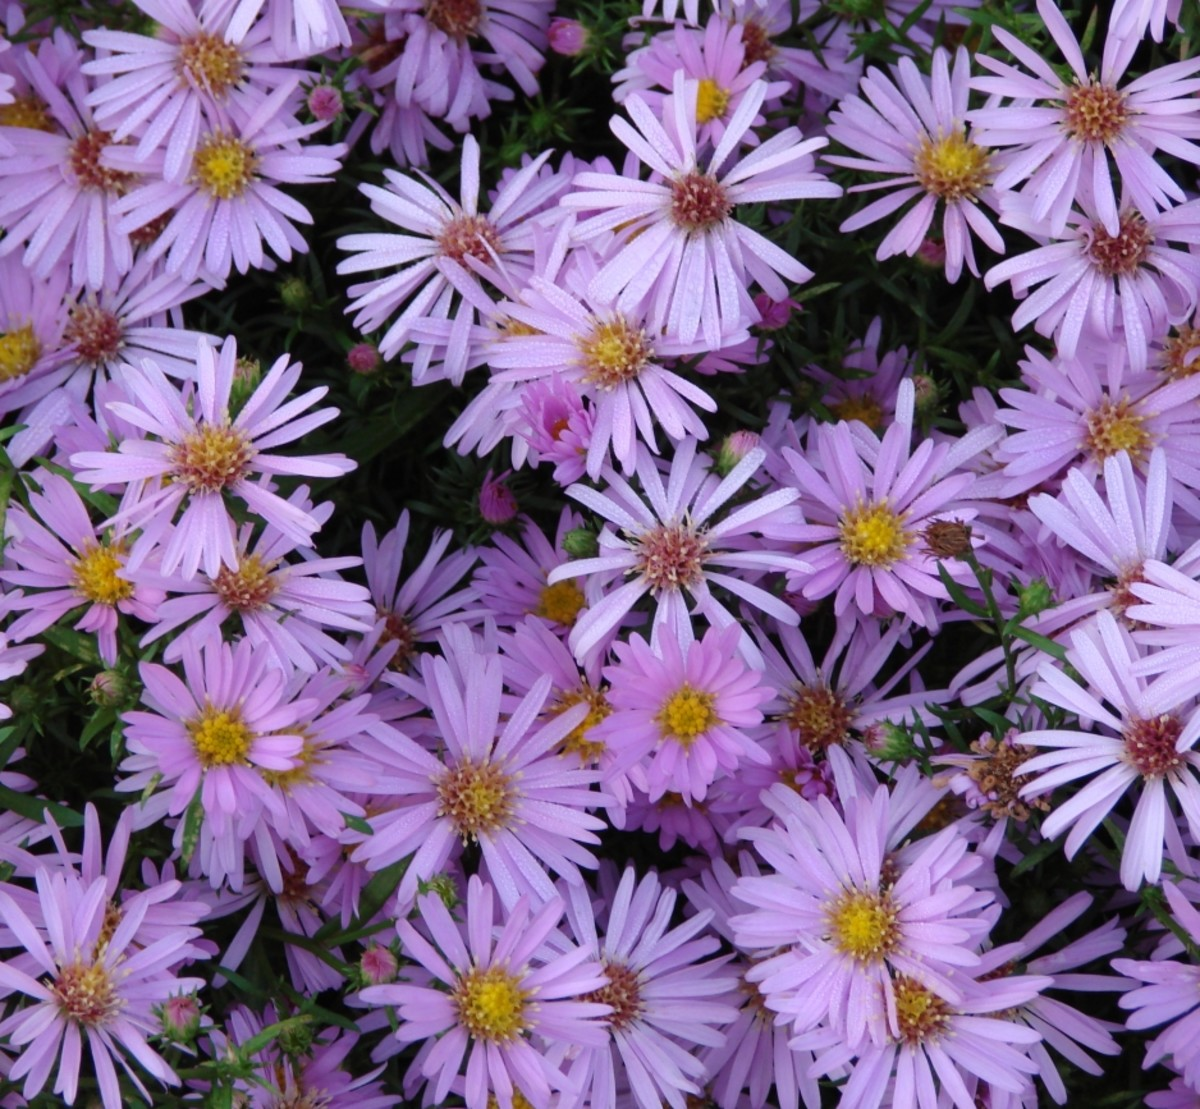 Alpine Aster—Pretty lilac or pink colored daisy-like bloom